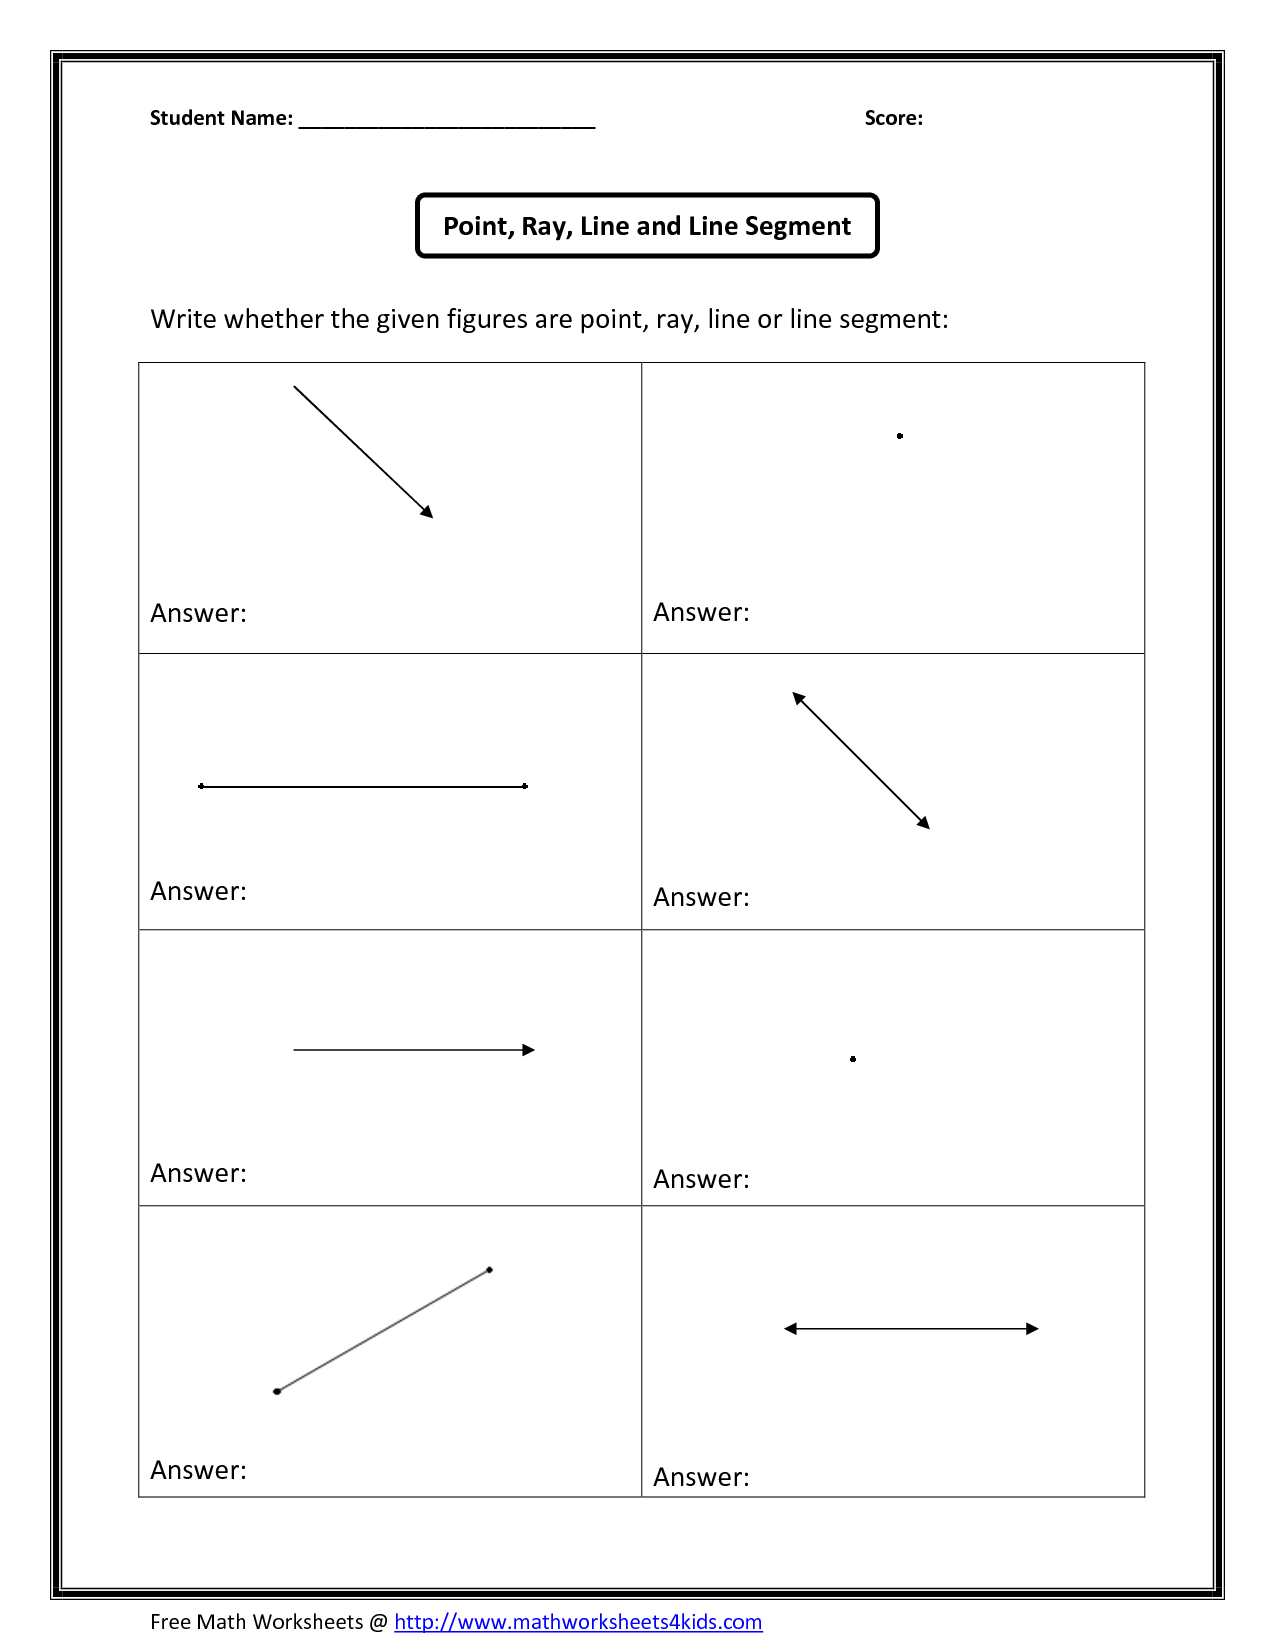 Line Segments Rays Worksheet Anwers